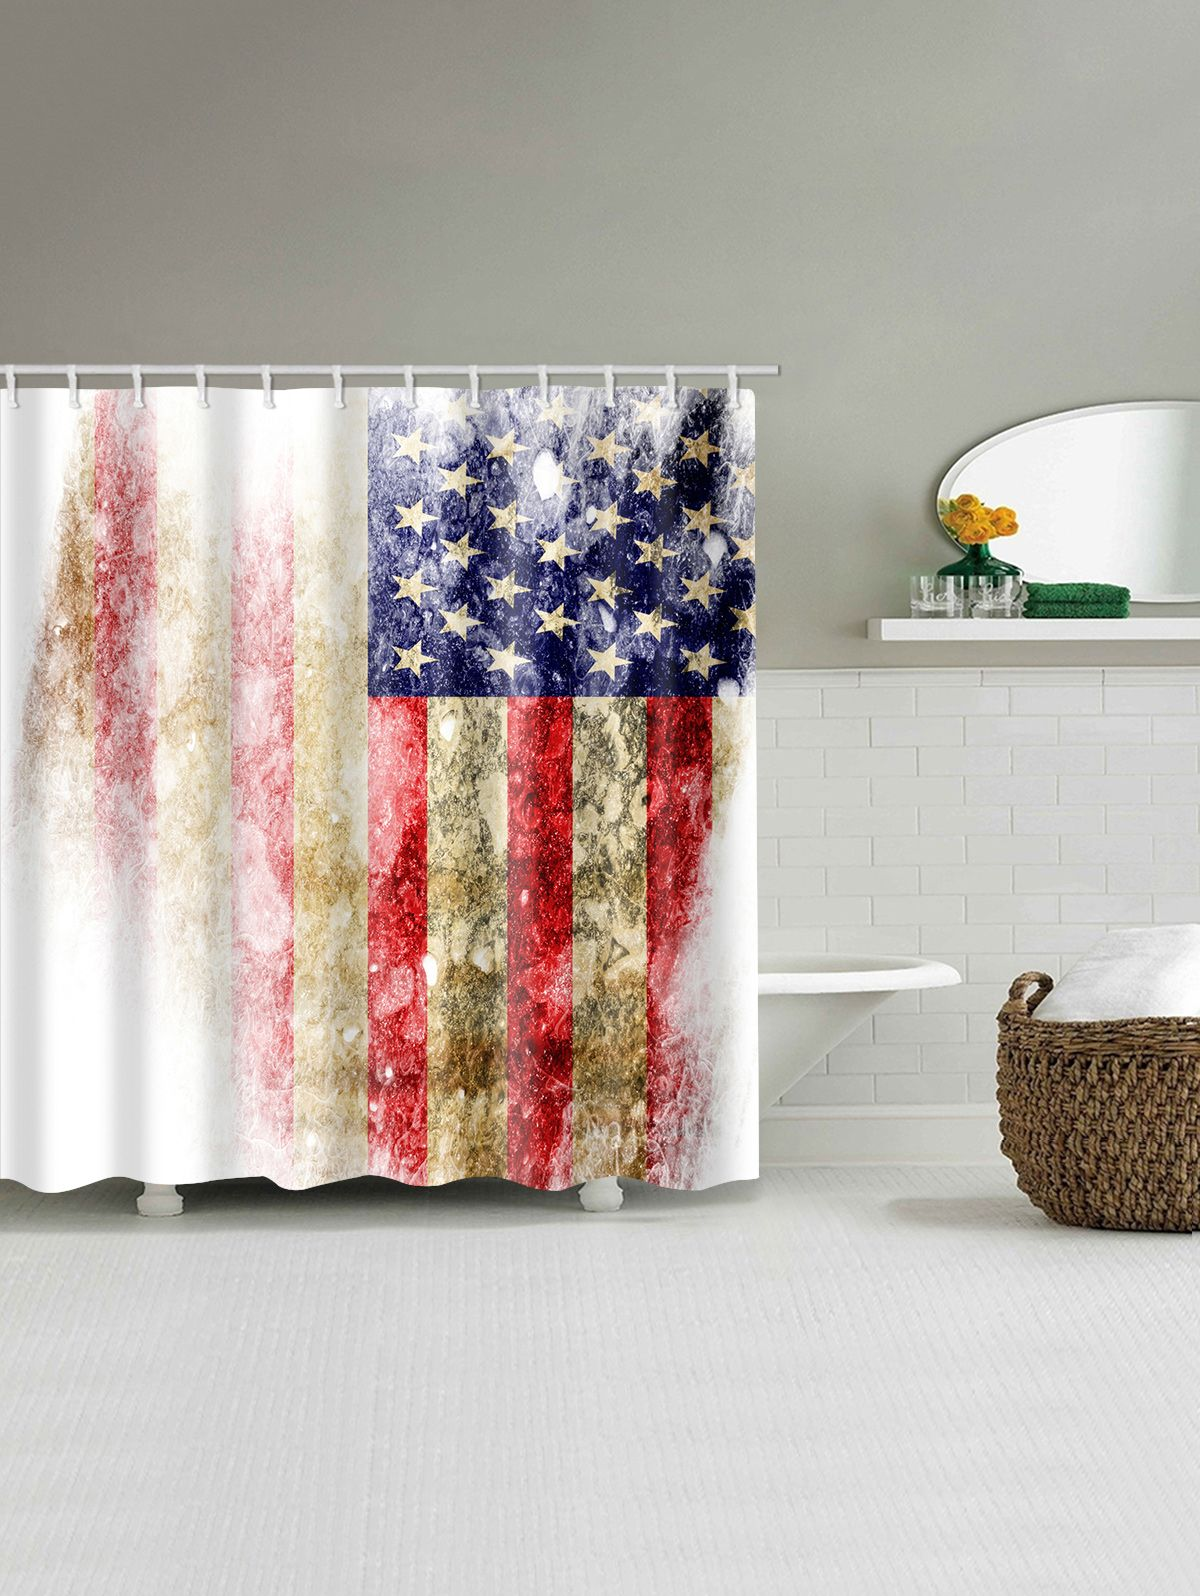 find shower curtains at dresslilycom enjoy free shipping browse our great selection - Dresslily Shower Curtains